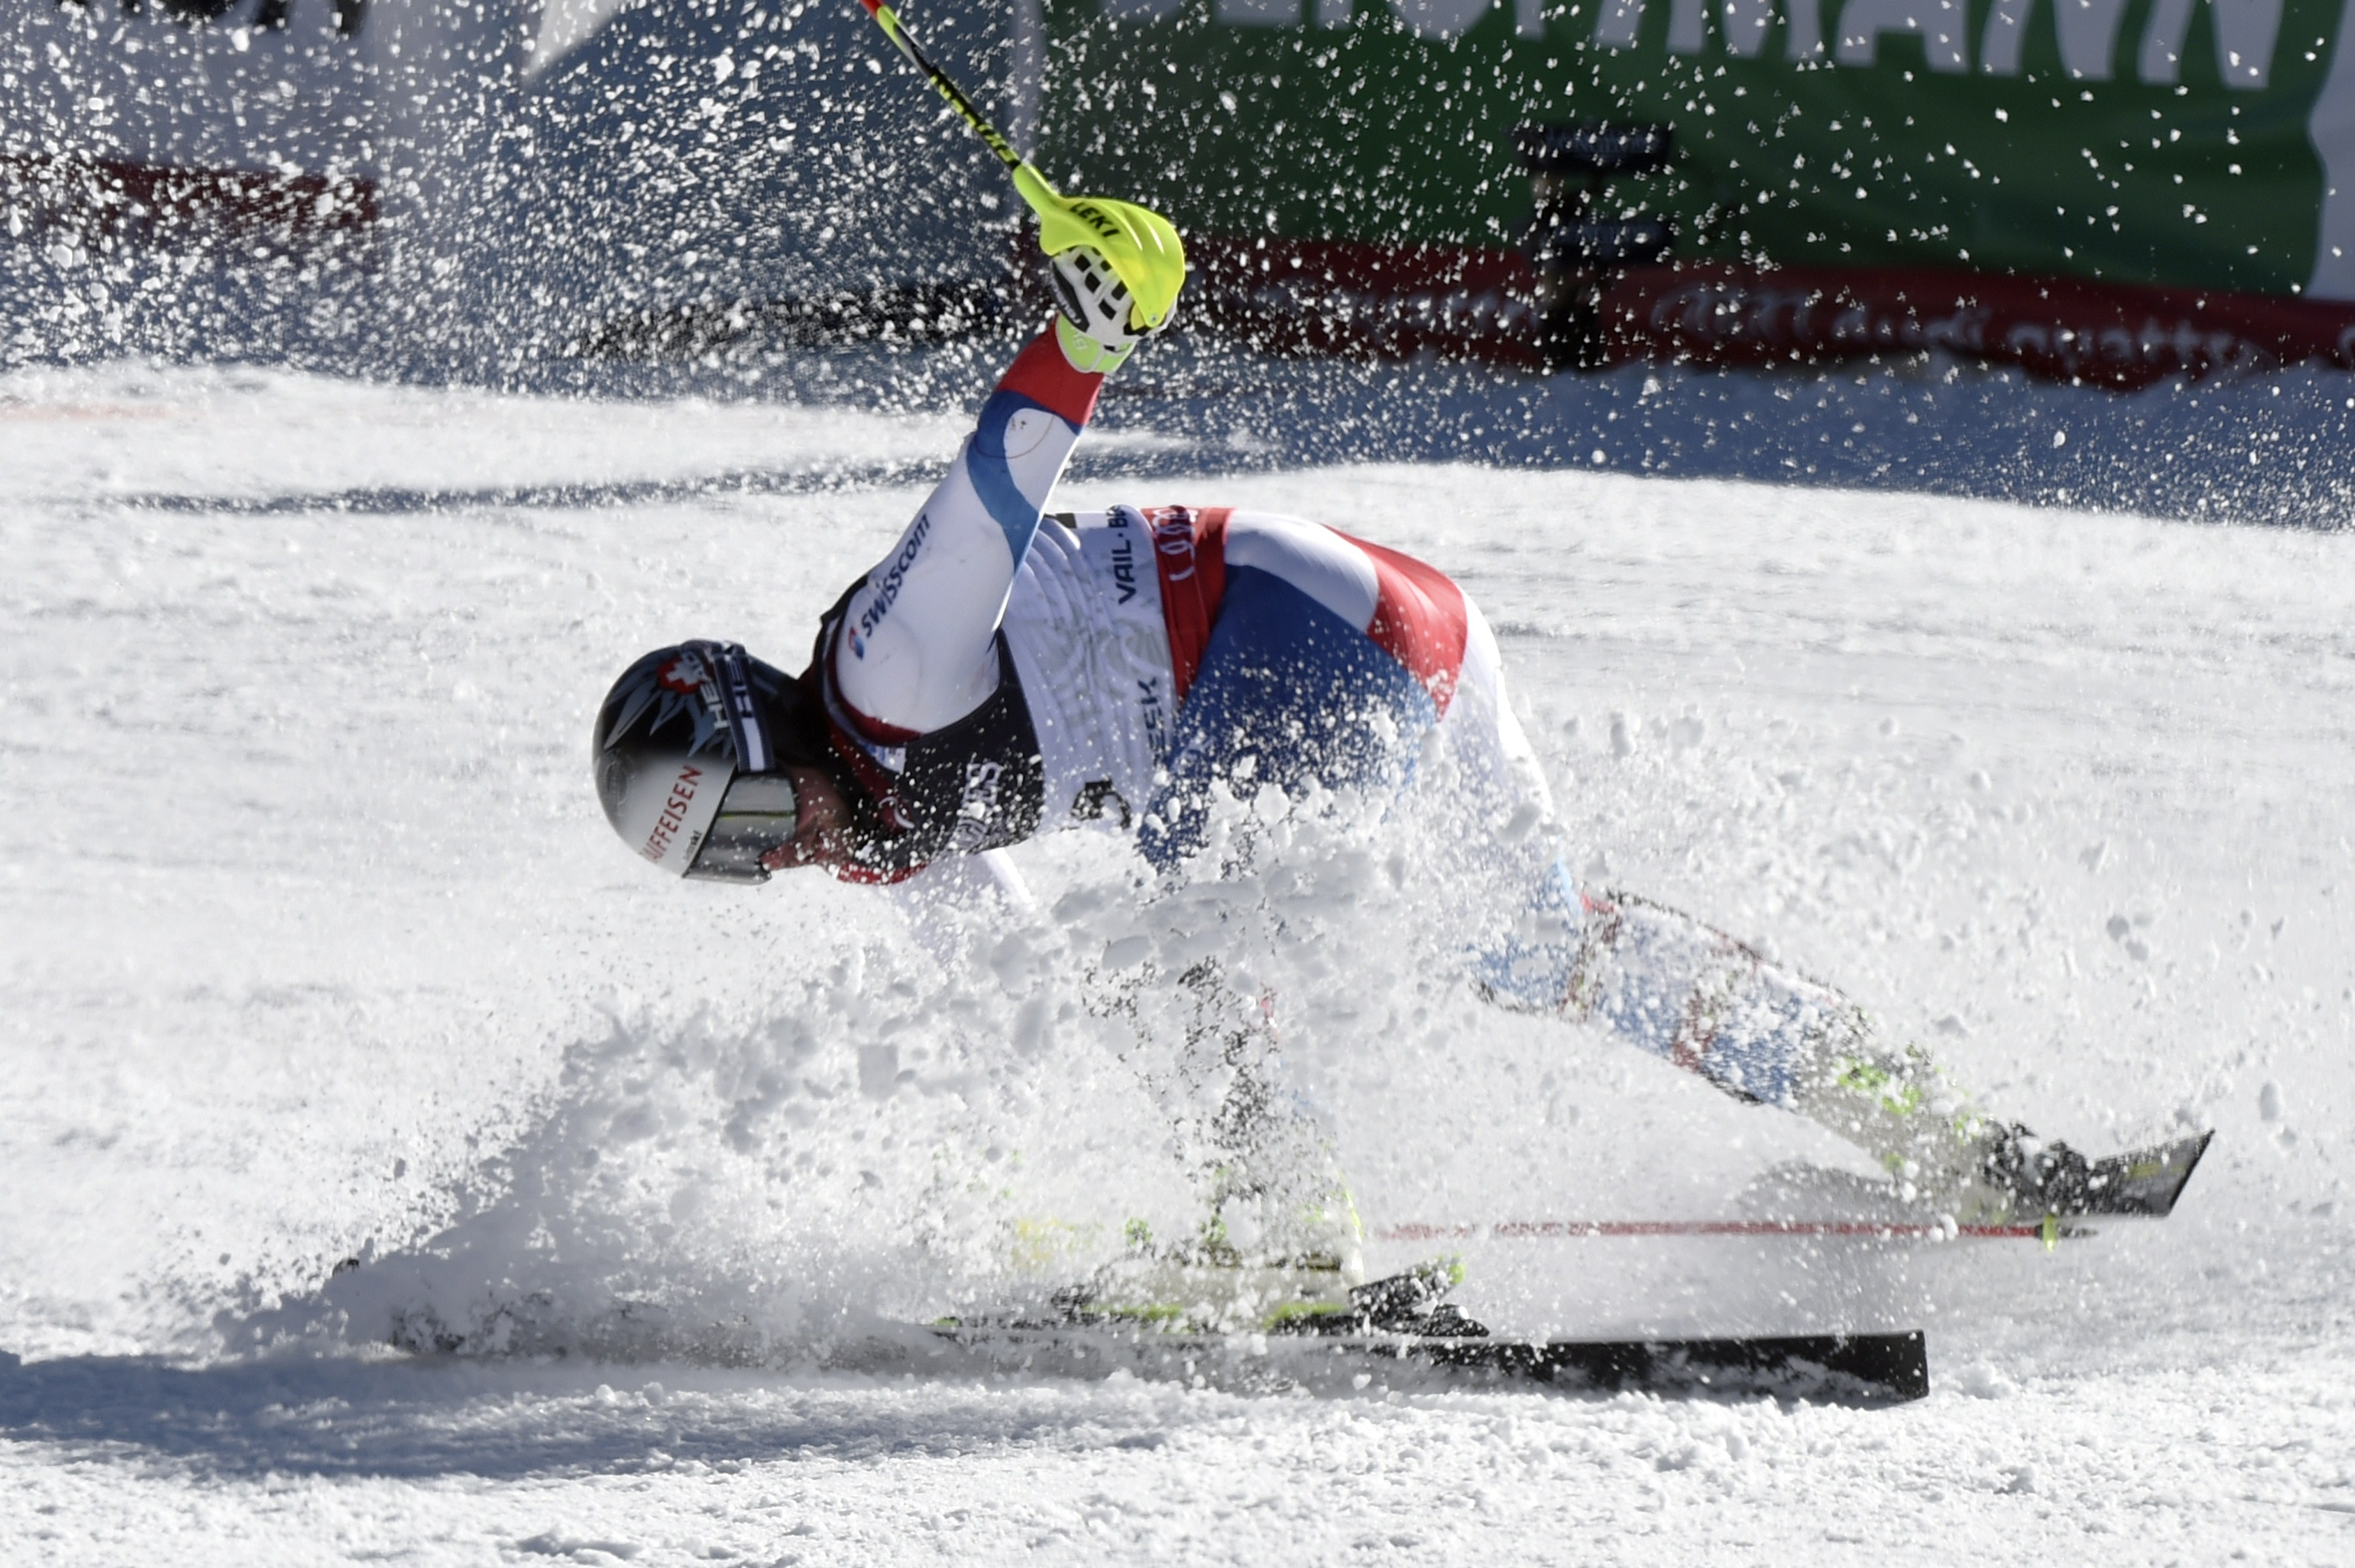 Switzerland's Beat Feuz crashes in the finish area of the 2015 World Alpine Ski Championships men's combined, on February 8, 2015 in Beaver Creek, Colorado.  (credit: MARK RALSTON/AFP/Getty Images)